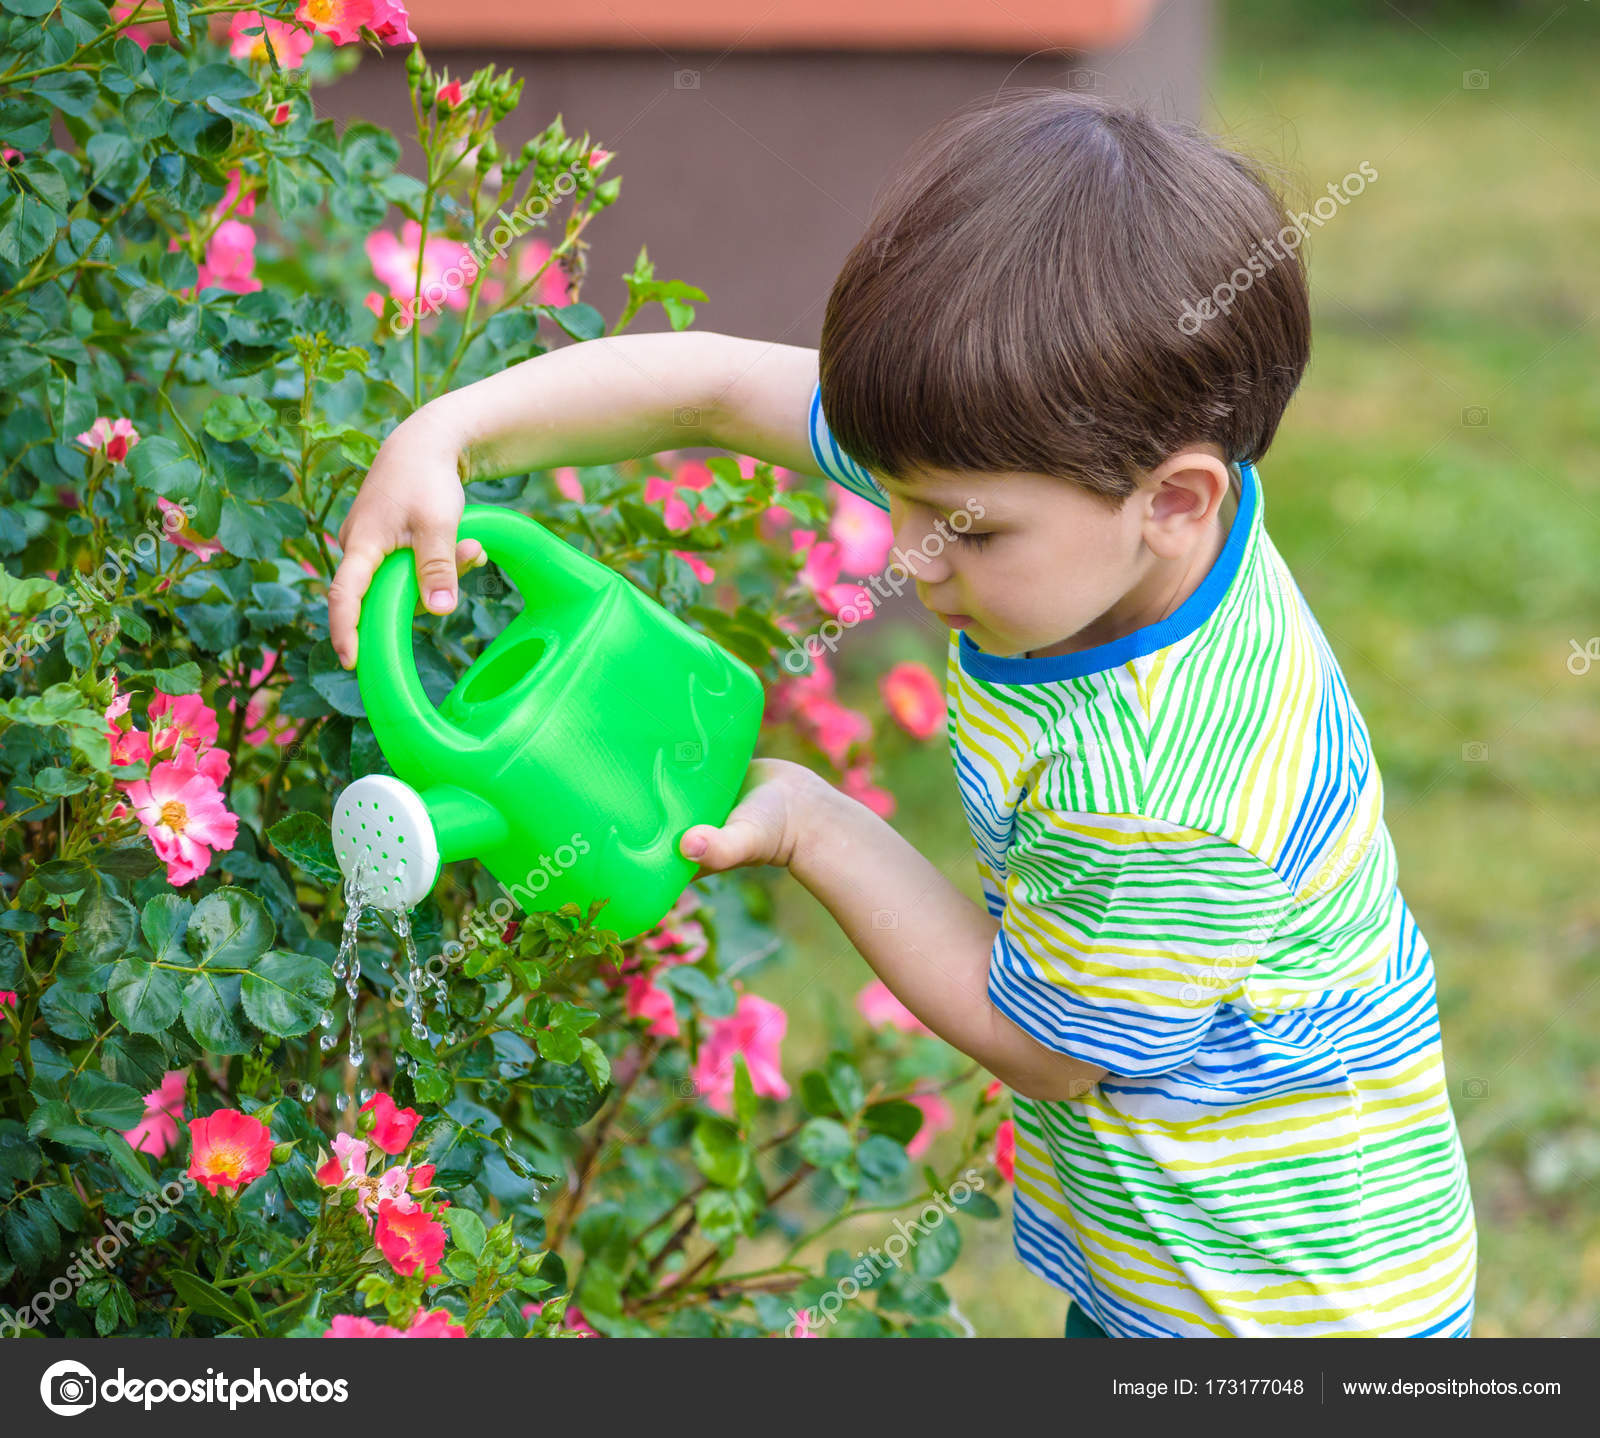 Cute Little Boy Watering Plants With Watering Can In The